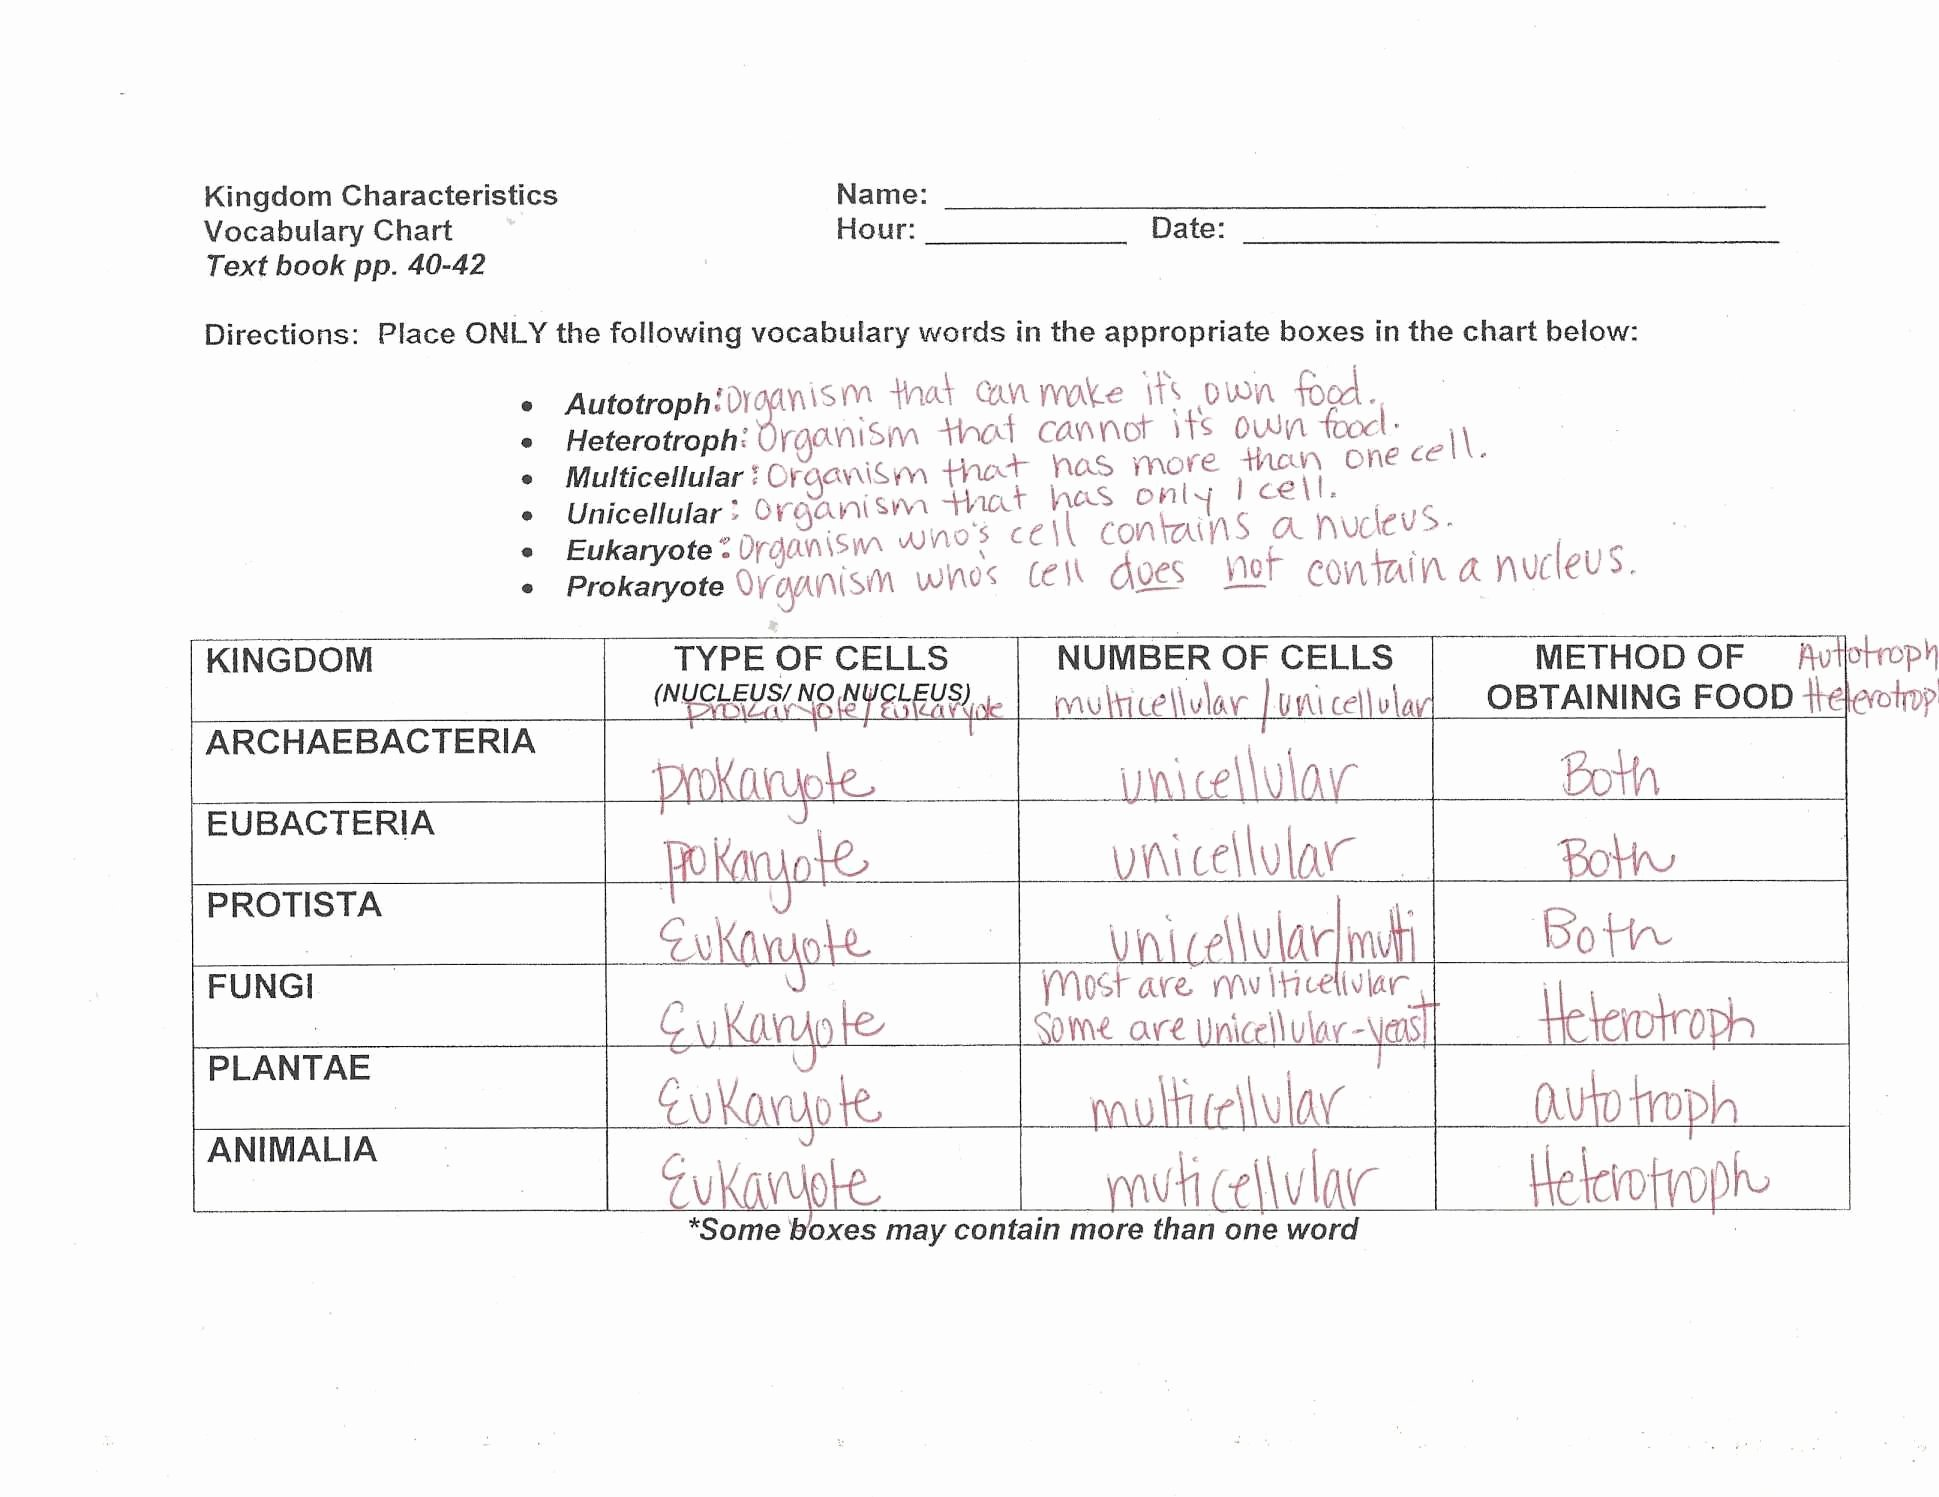 Food Inc Worksheet Answers Elegant Reproducible Student Worksheet